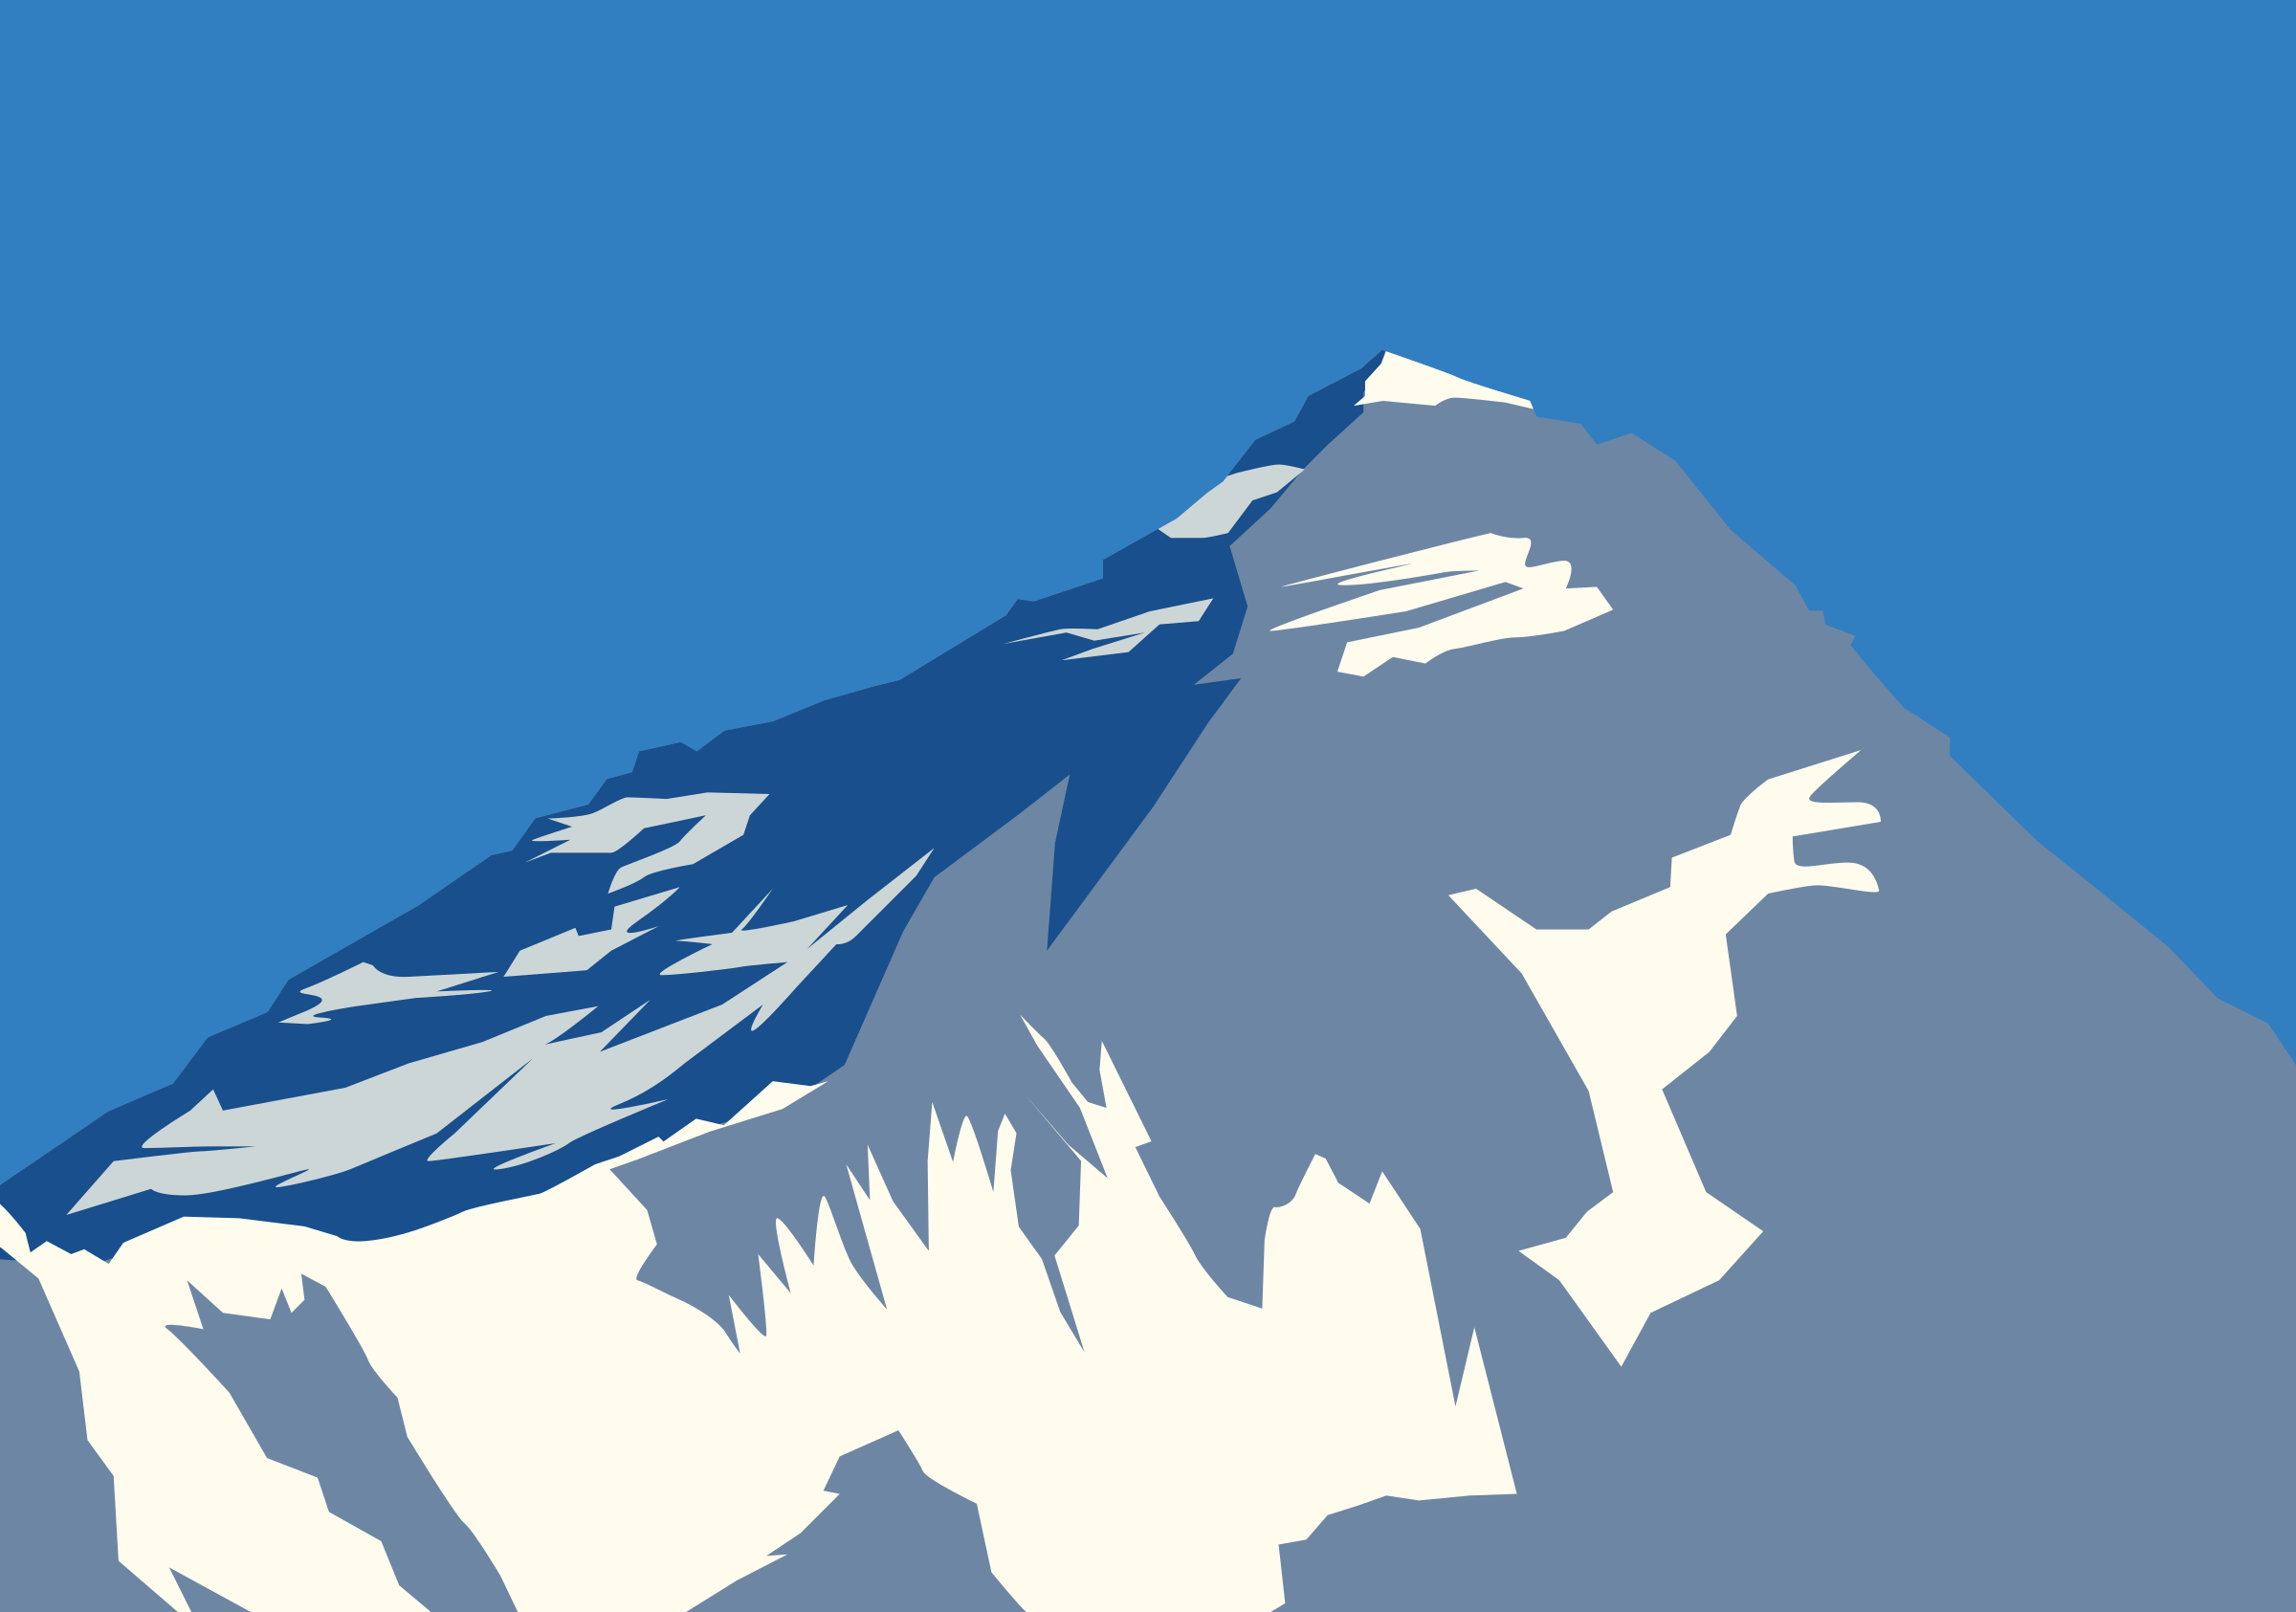 Mount hood clipart png black and white Mount clipart - Clip Art Library png black and white